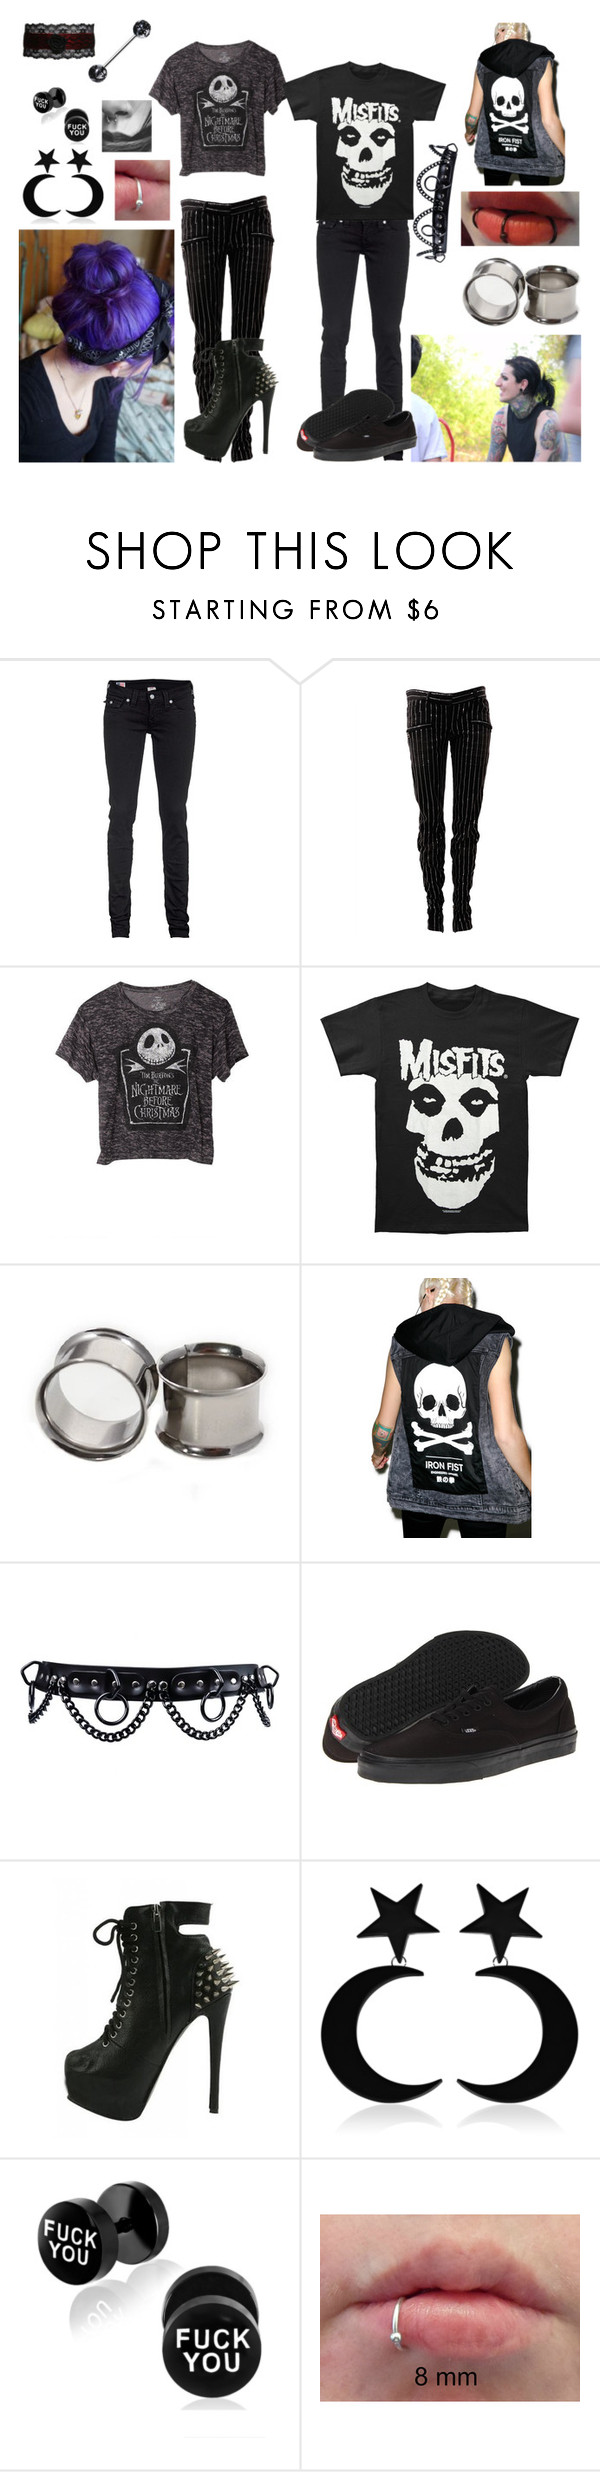 """""""motionless in white preferences"""" by newmotionlessjinxxgamer ❤ liked on Polyvore featuring True Religion, Balmain, Iron Fist and Vans"""